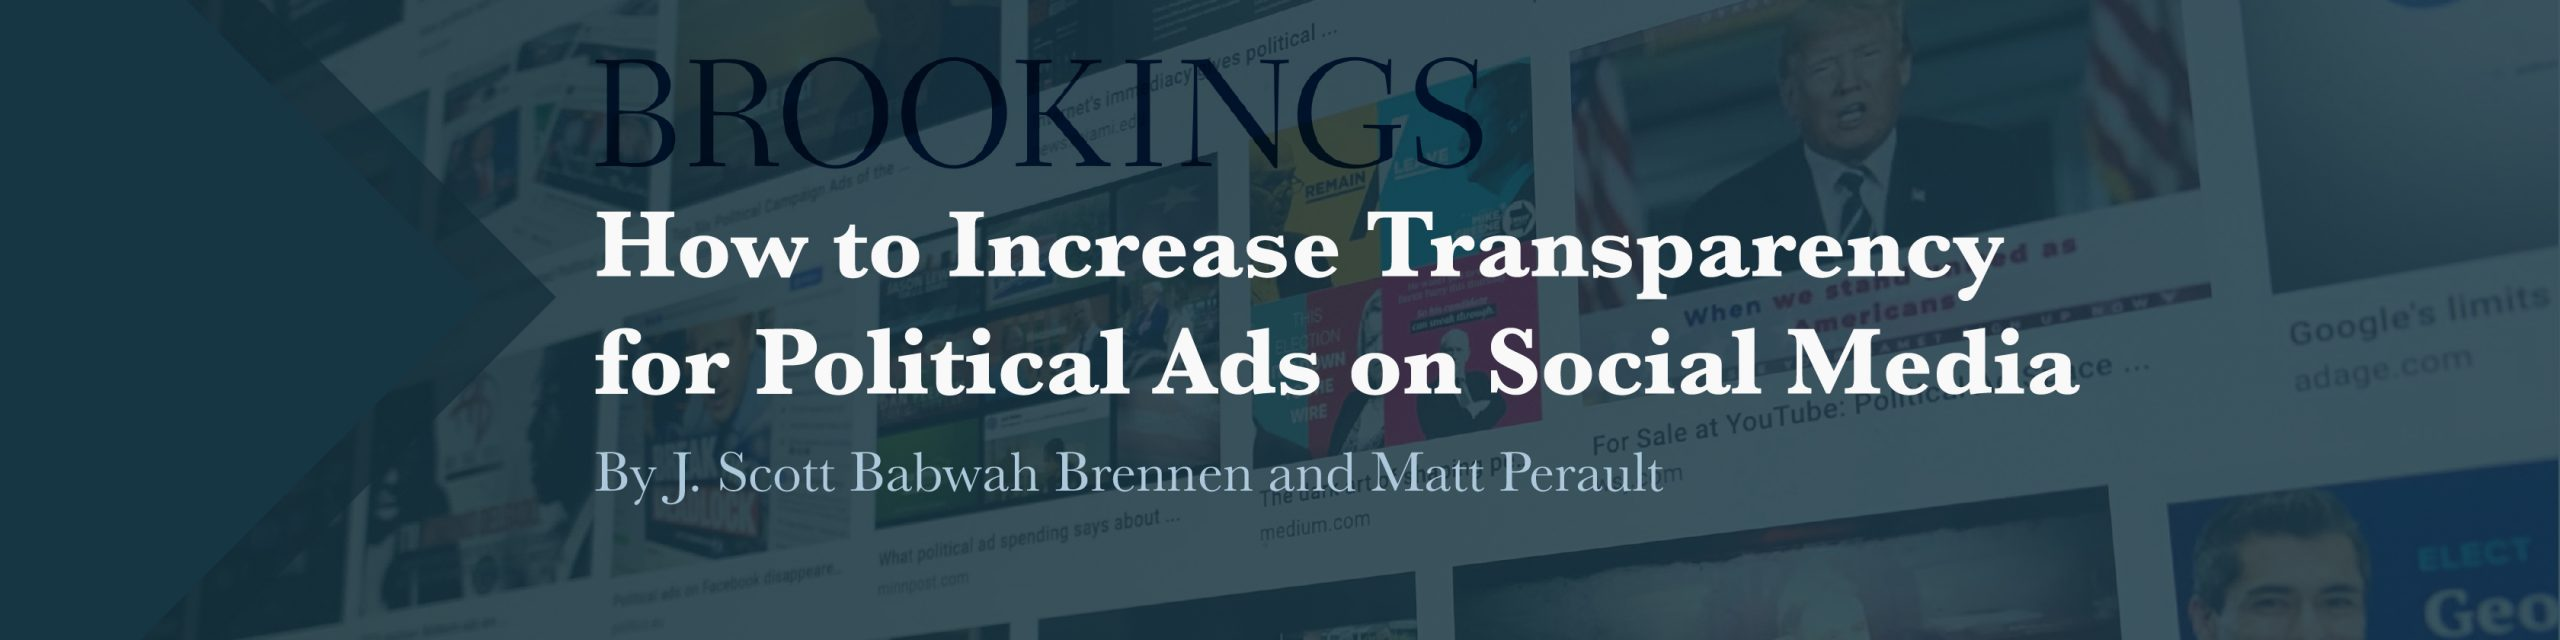 Brookings - How to Increase Transparency for Political Ads on Social Media